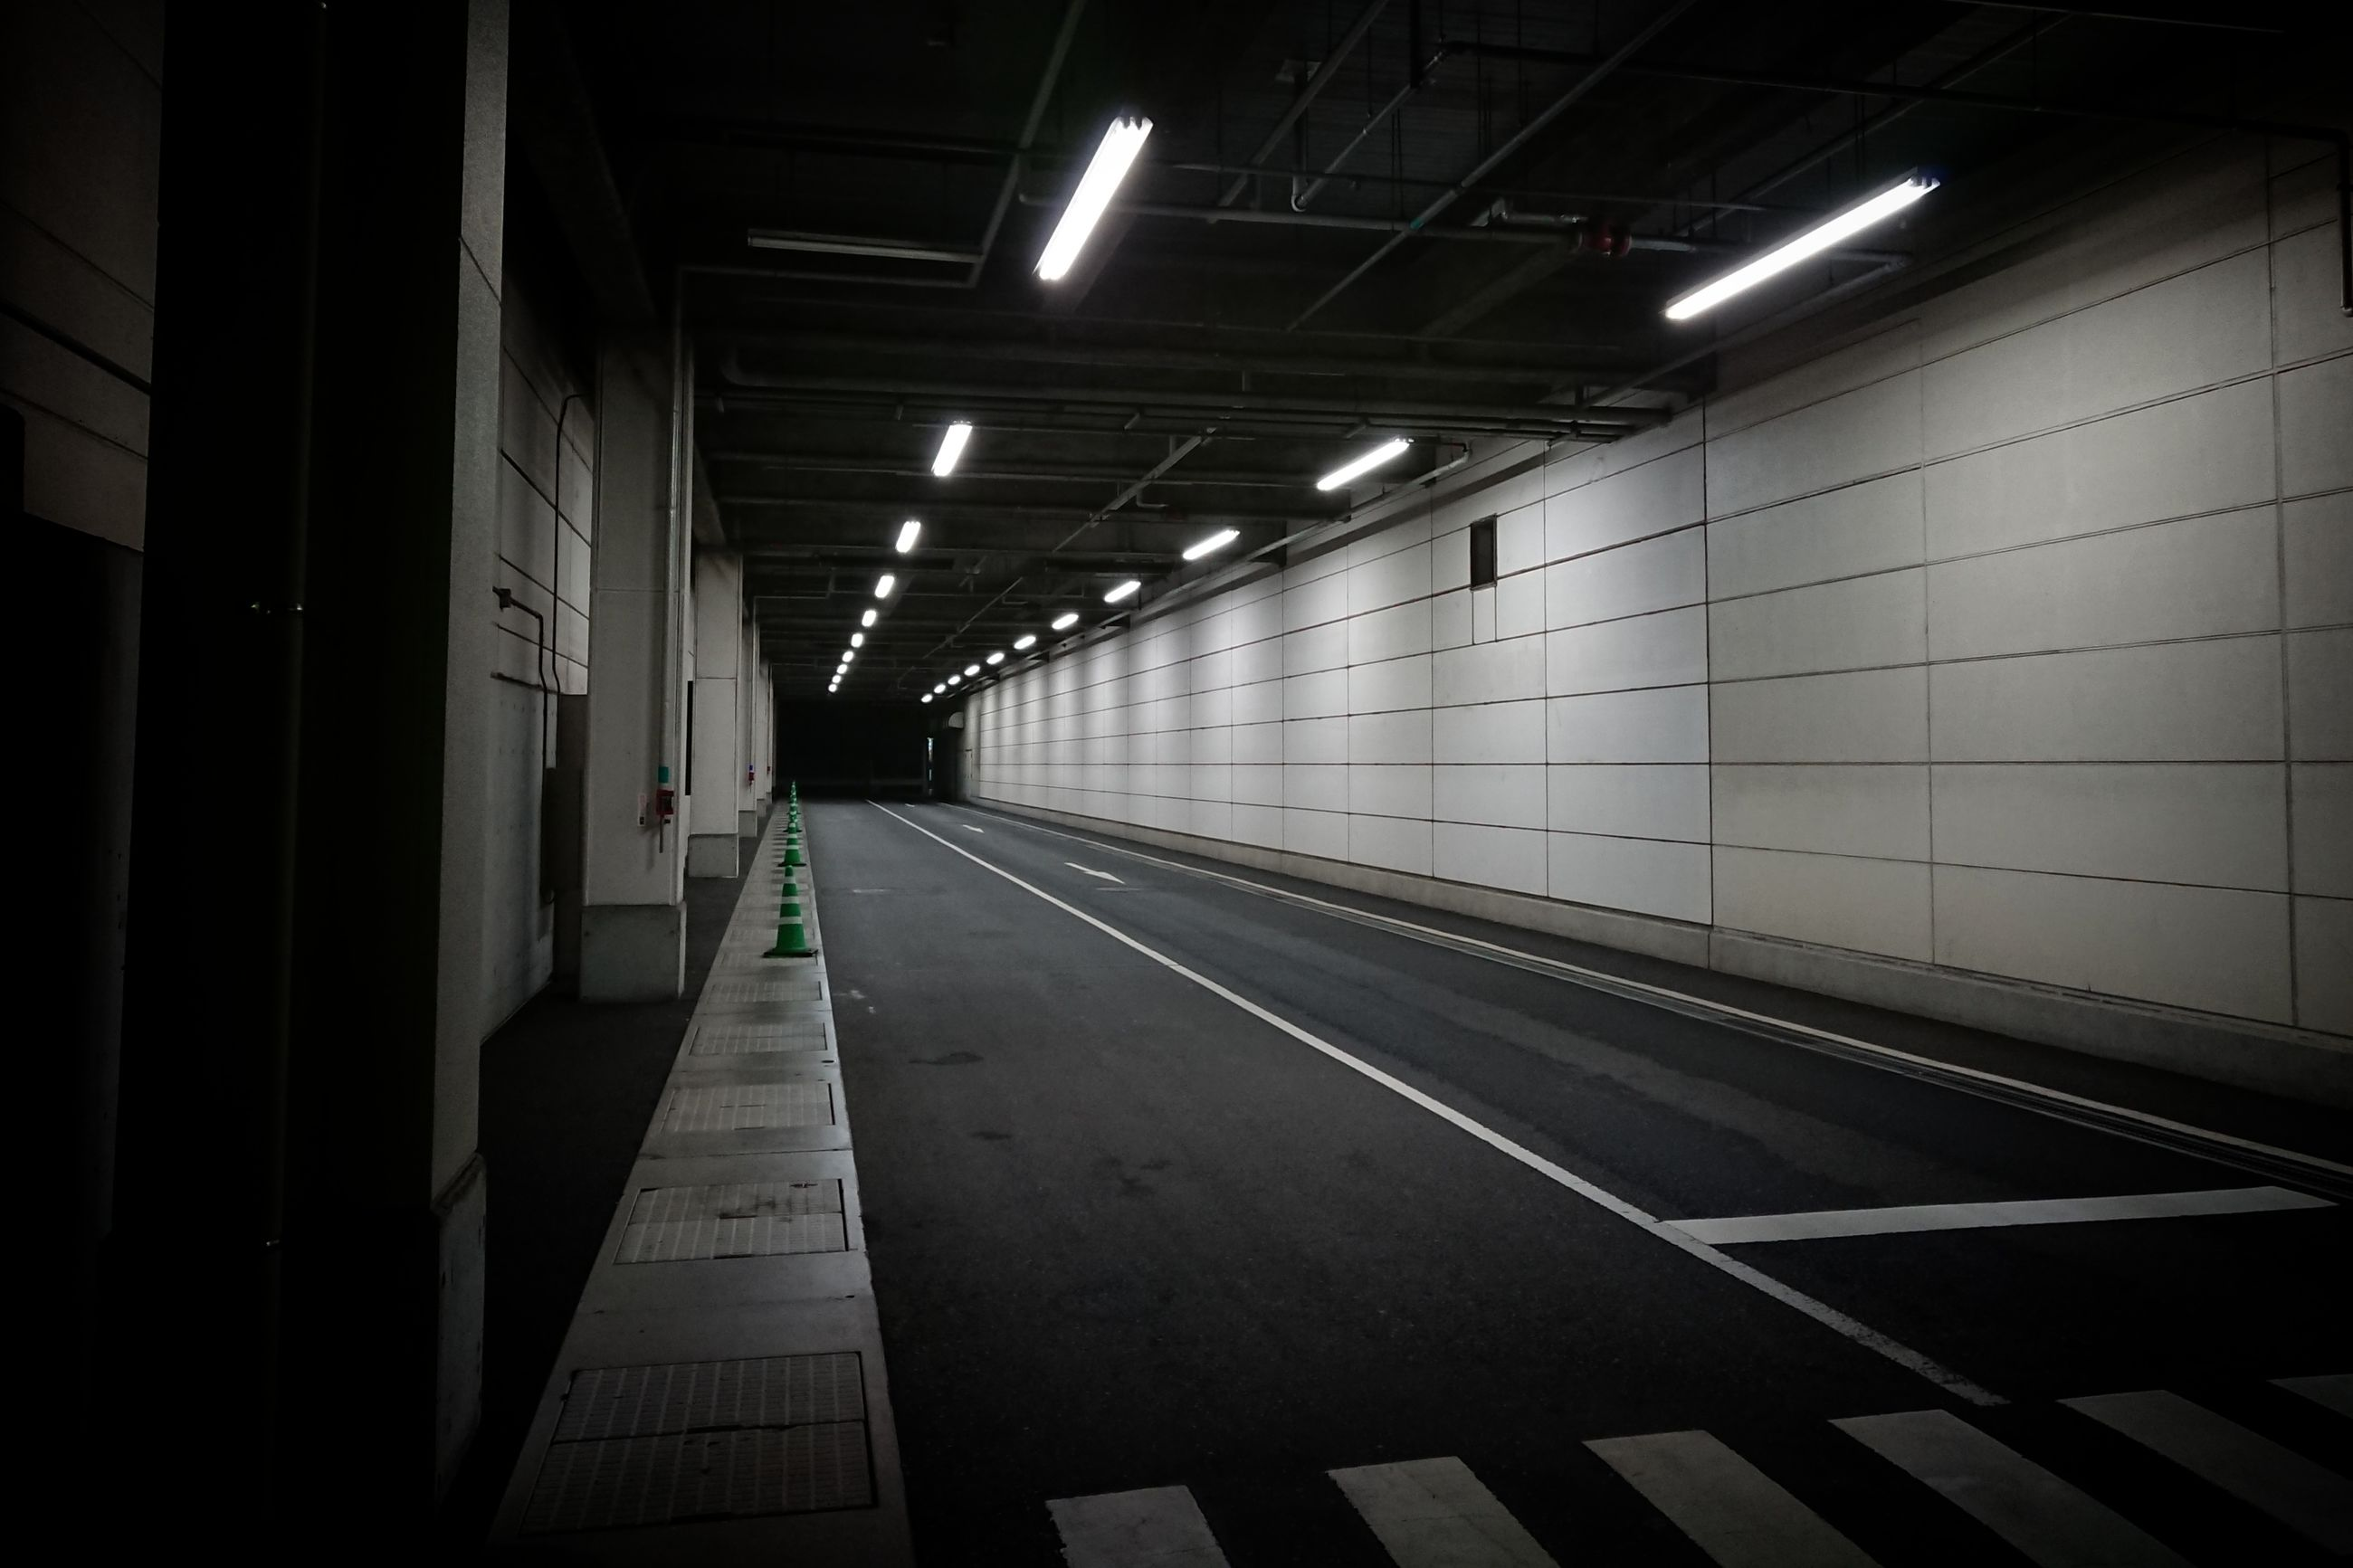 illuminated, lighting equipment, direction, transportation, architecture, indoors, empty, the way forward, public transportation, ceiling, subway, rail transportation, built structure, no people, diminishing perspective, wall - building feature, railroad station, flooring, railroad station platform, light, track, electricity, fluorescent light, architectural column, tiled floor, long, underpass